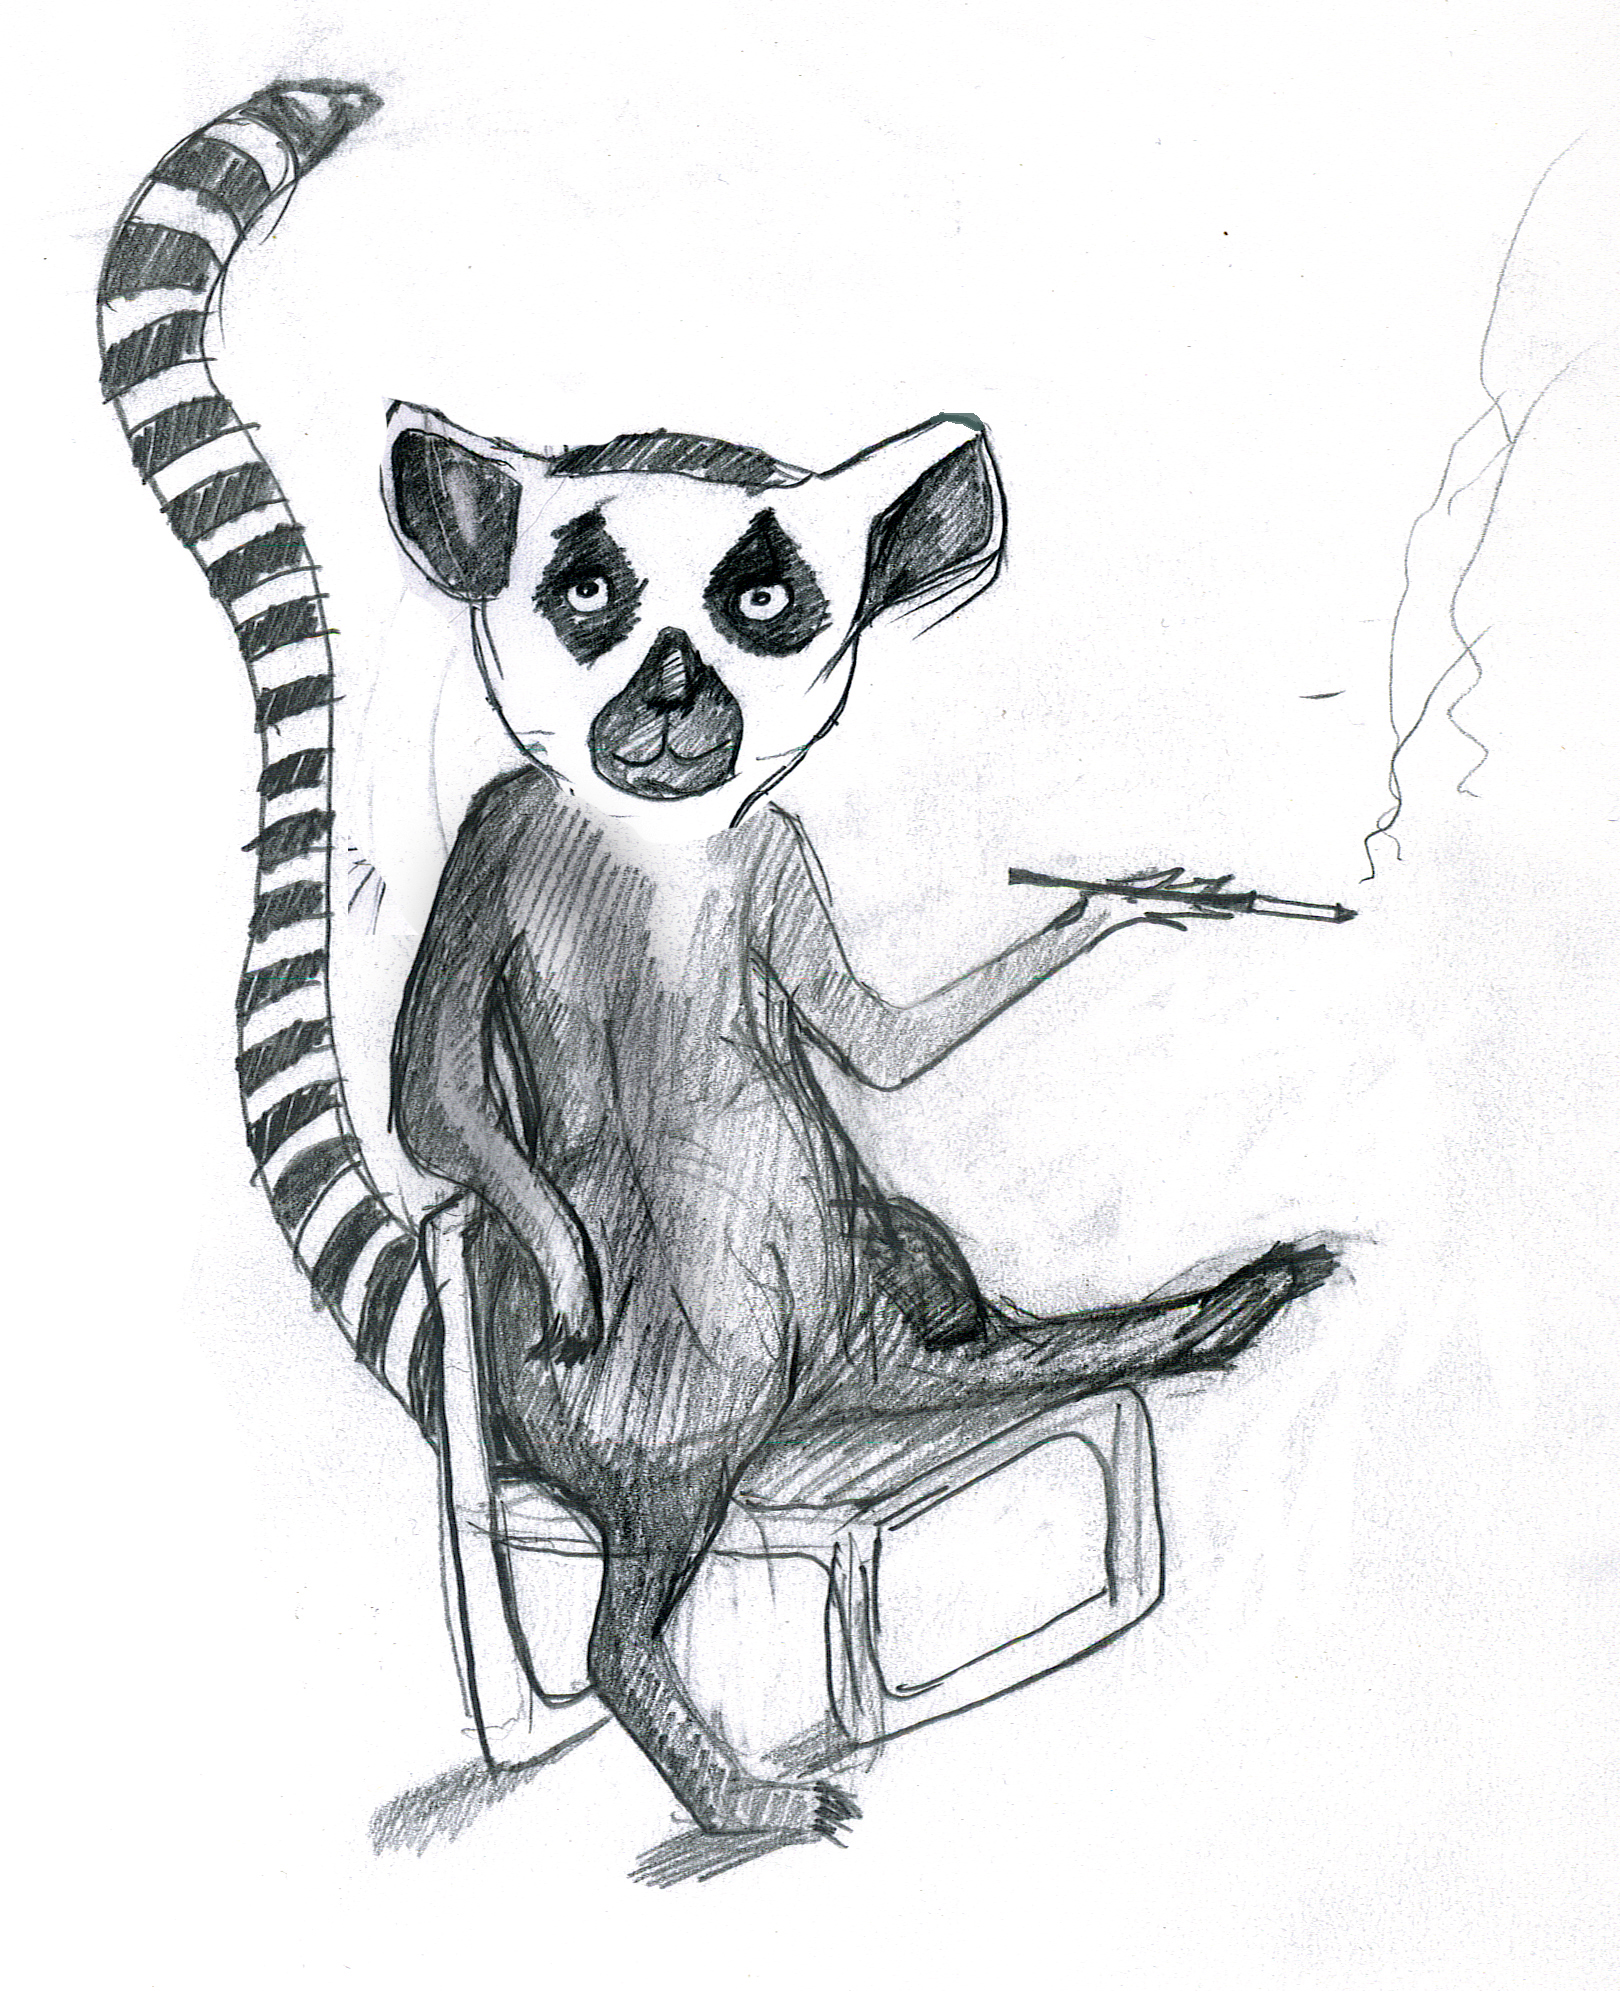 Lemur in a lawnchair